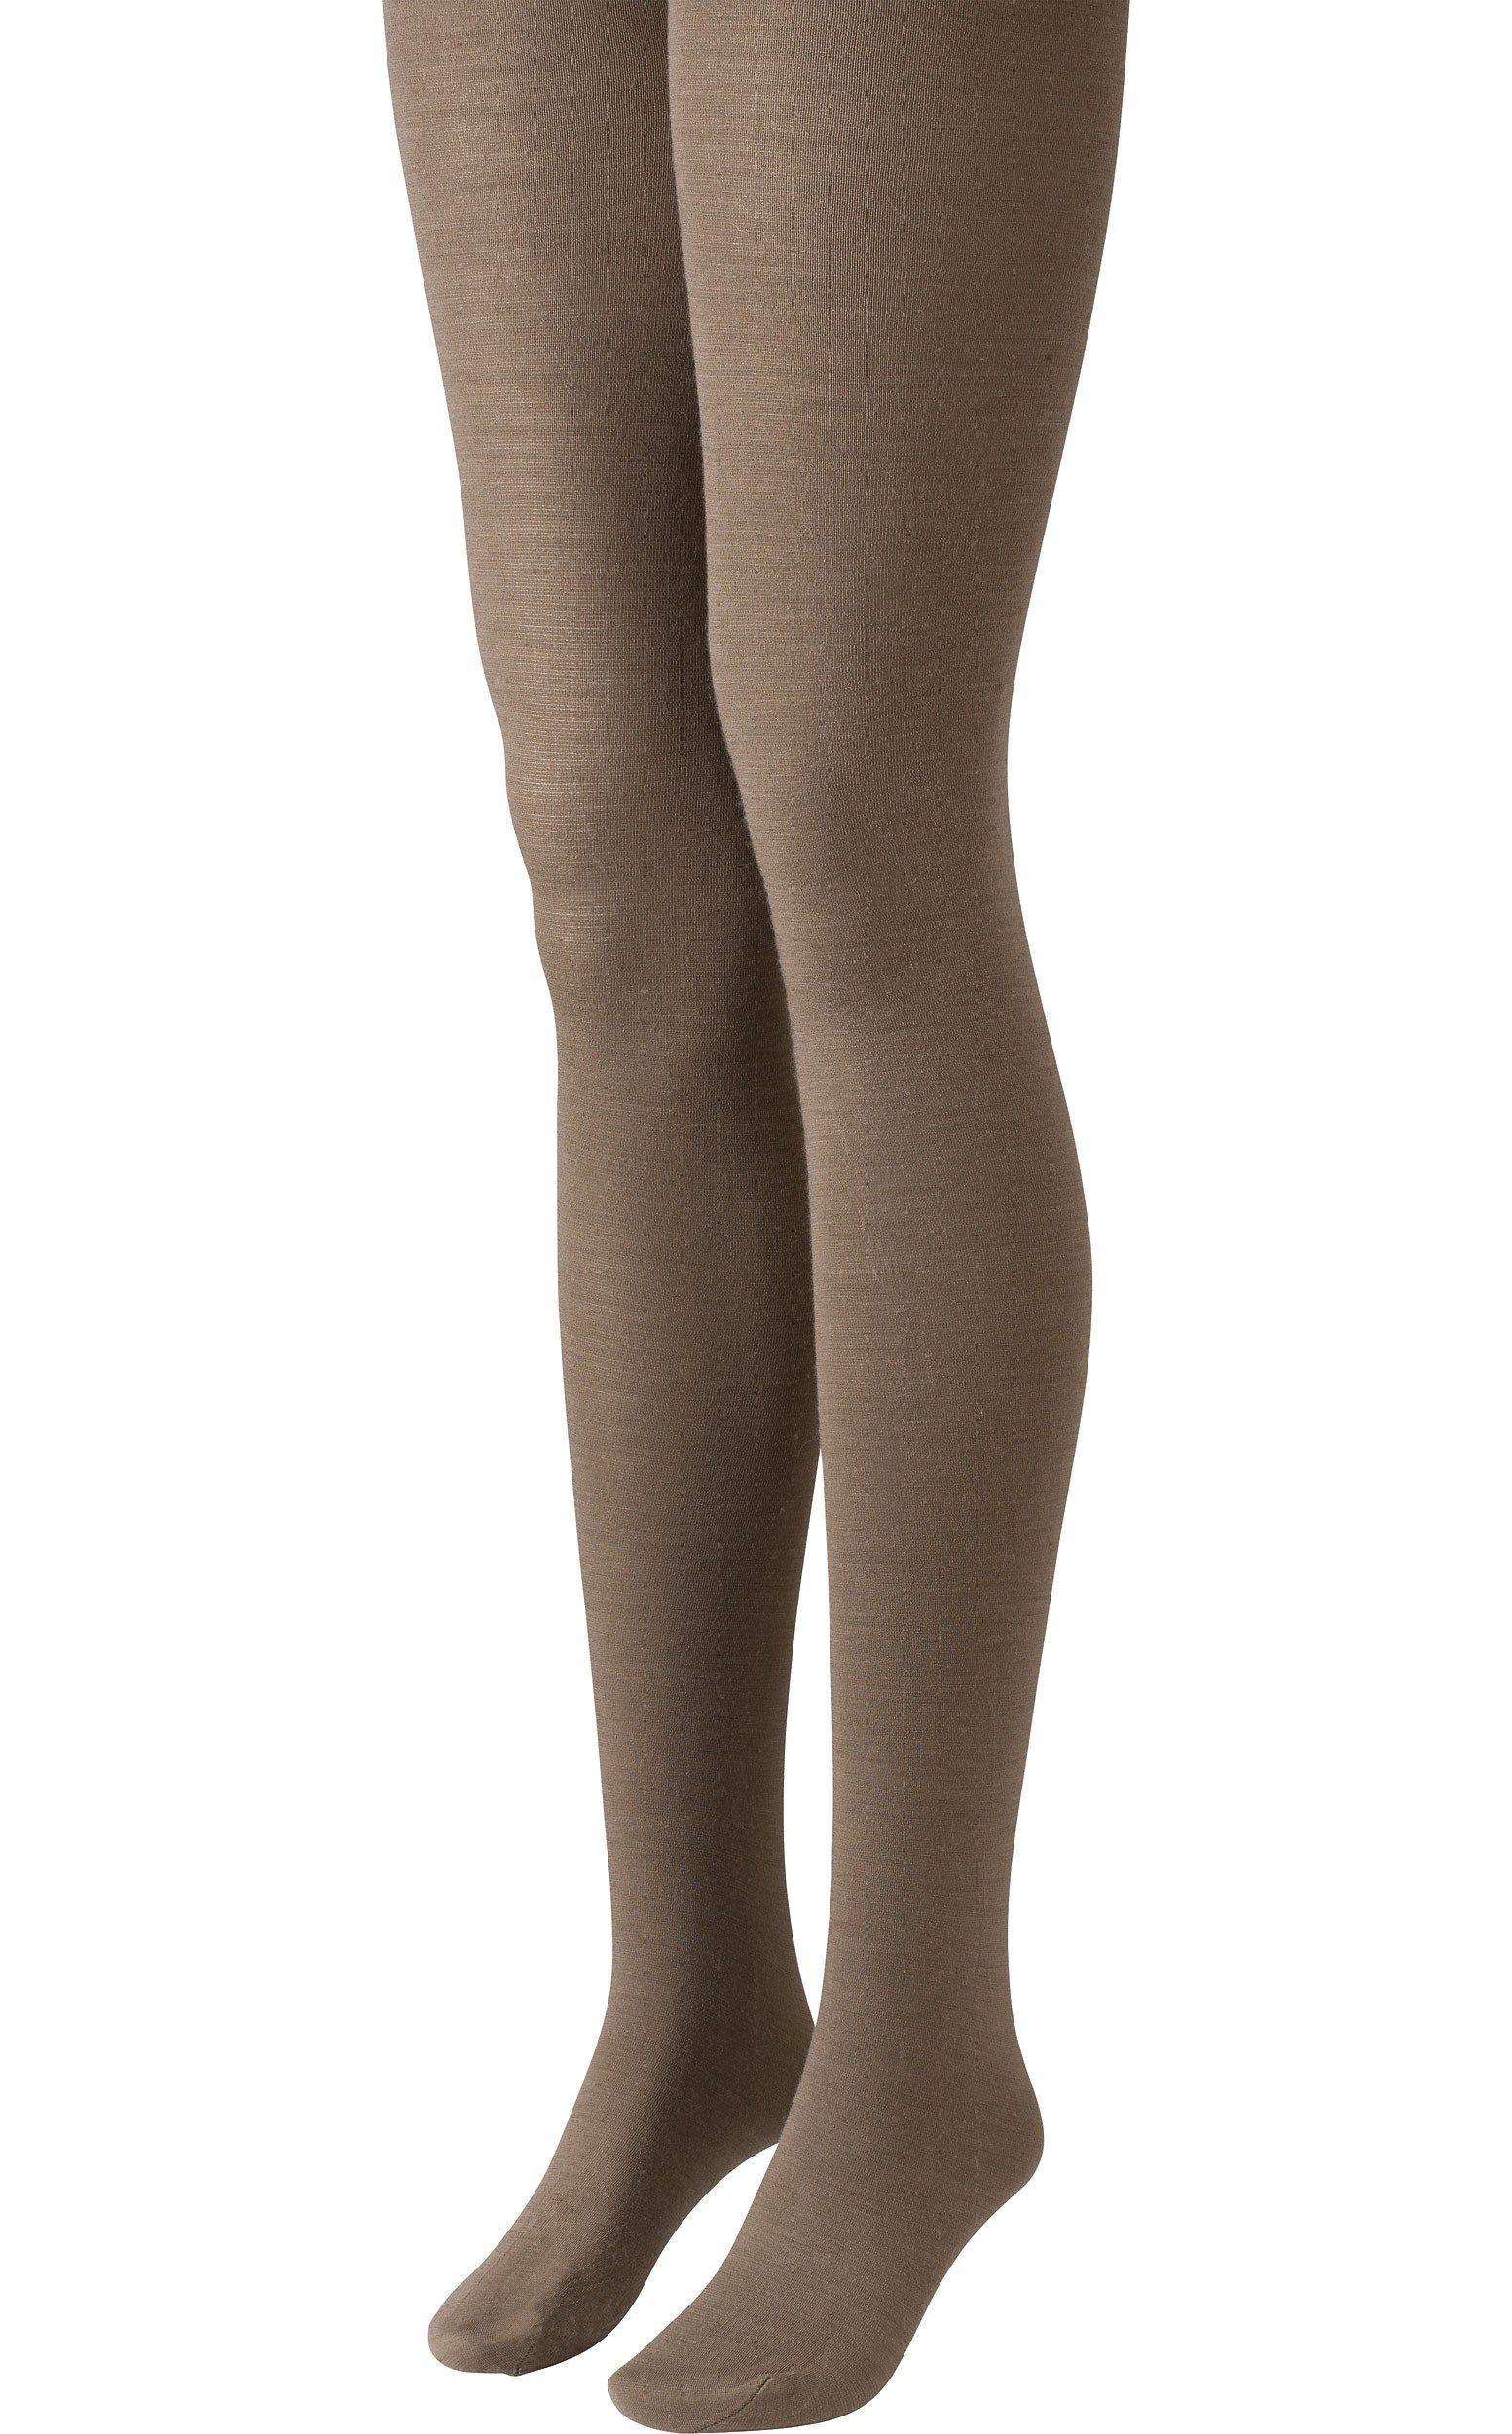 989620745deb83 wool tights in oatmeal | Accessories | Wool tights, Merino wool, Wool